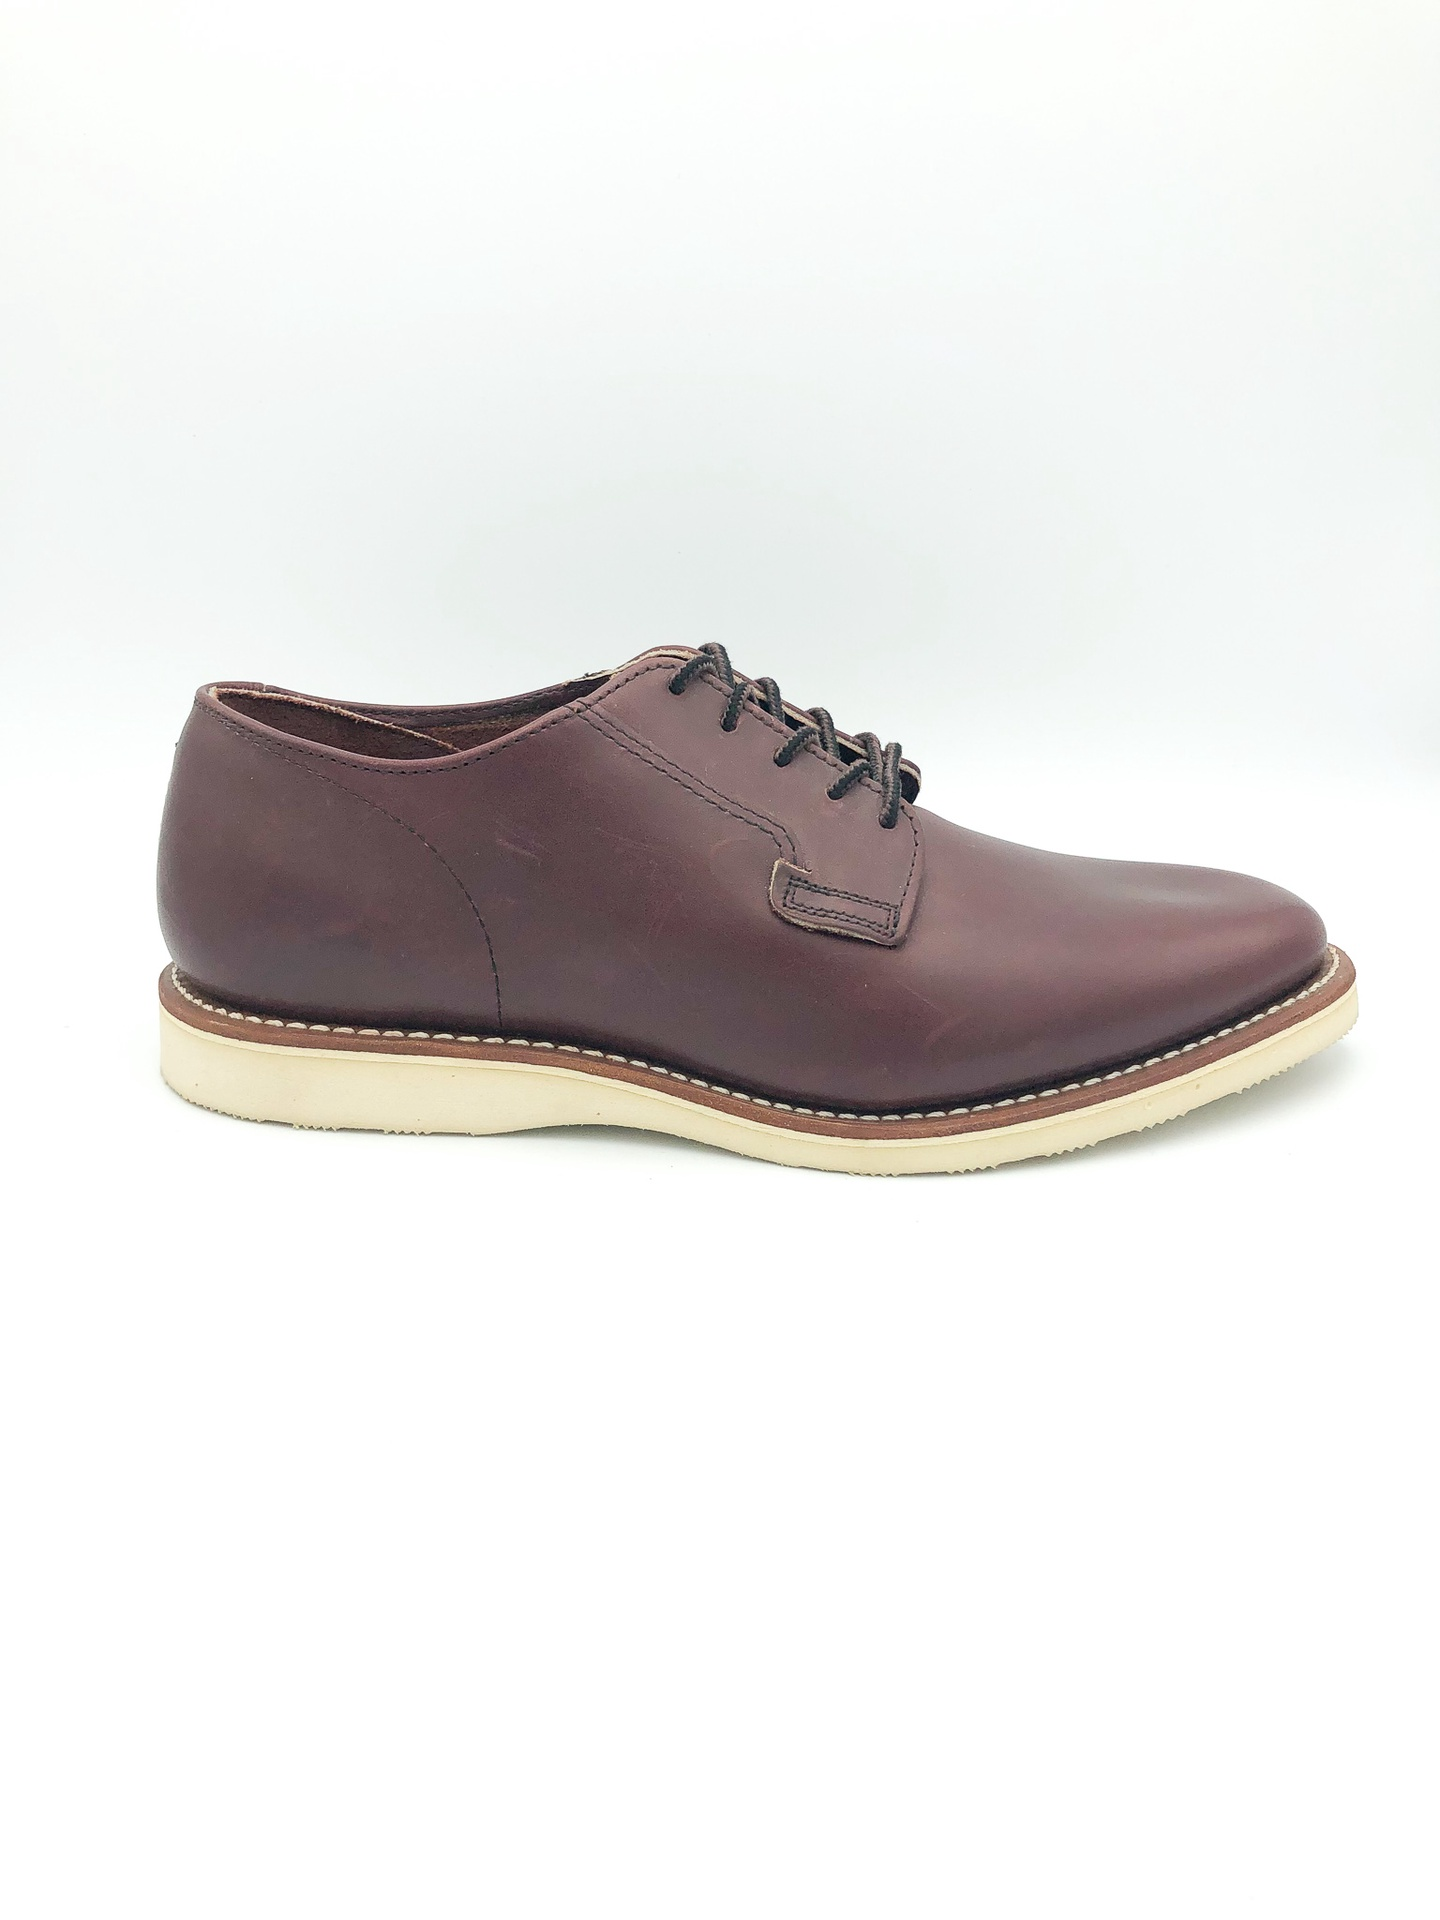 bdbcdd5e169 RED WING - MEN'S CLASSIC MOC IN CONCRETE ROUGH AND TOUGH LEATHER ...